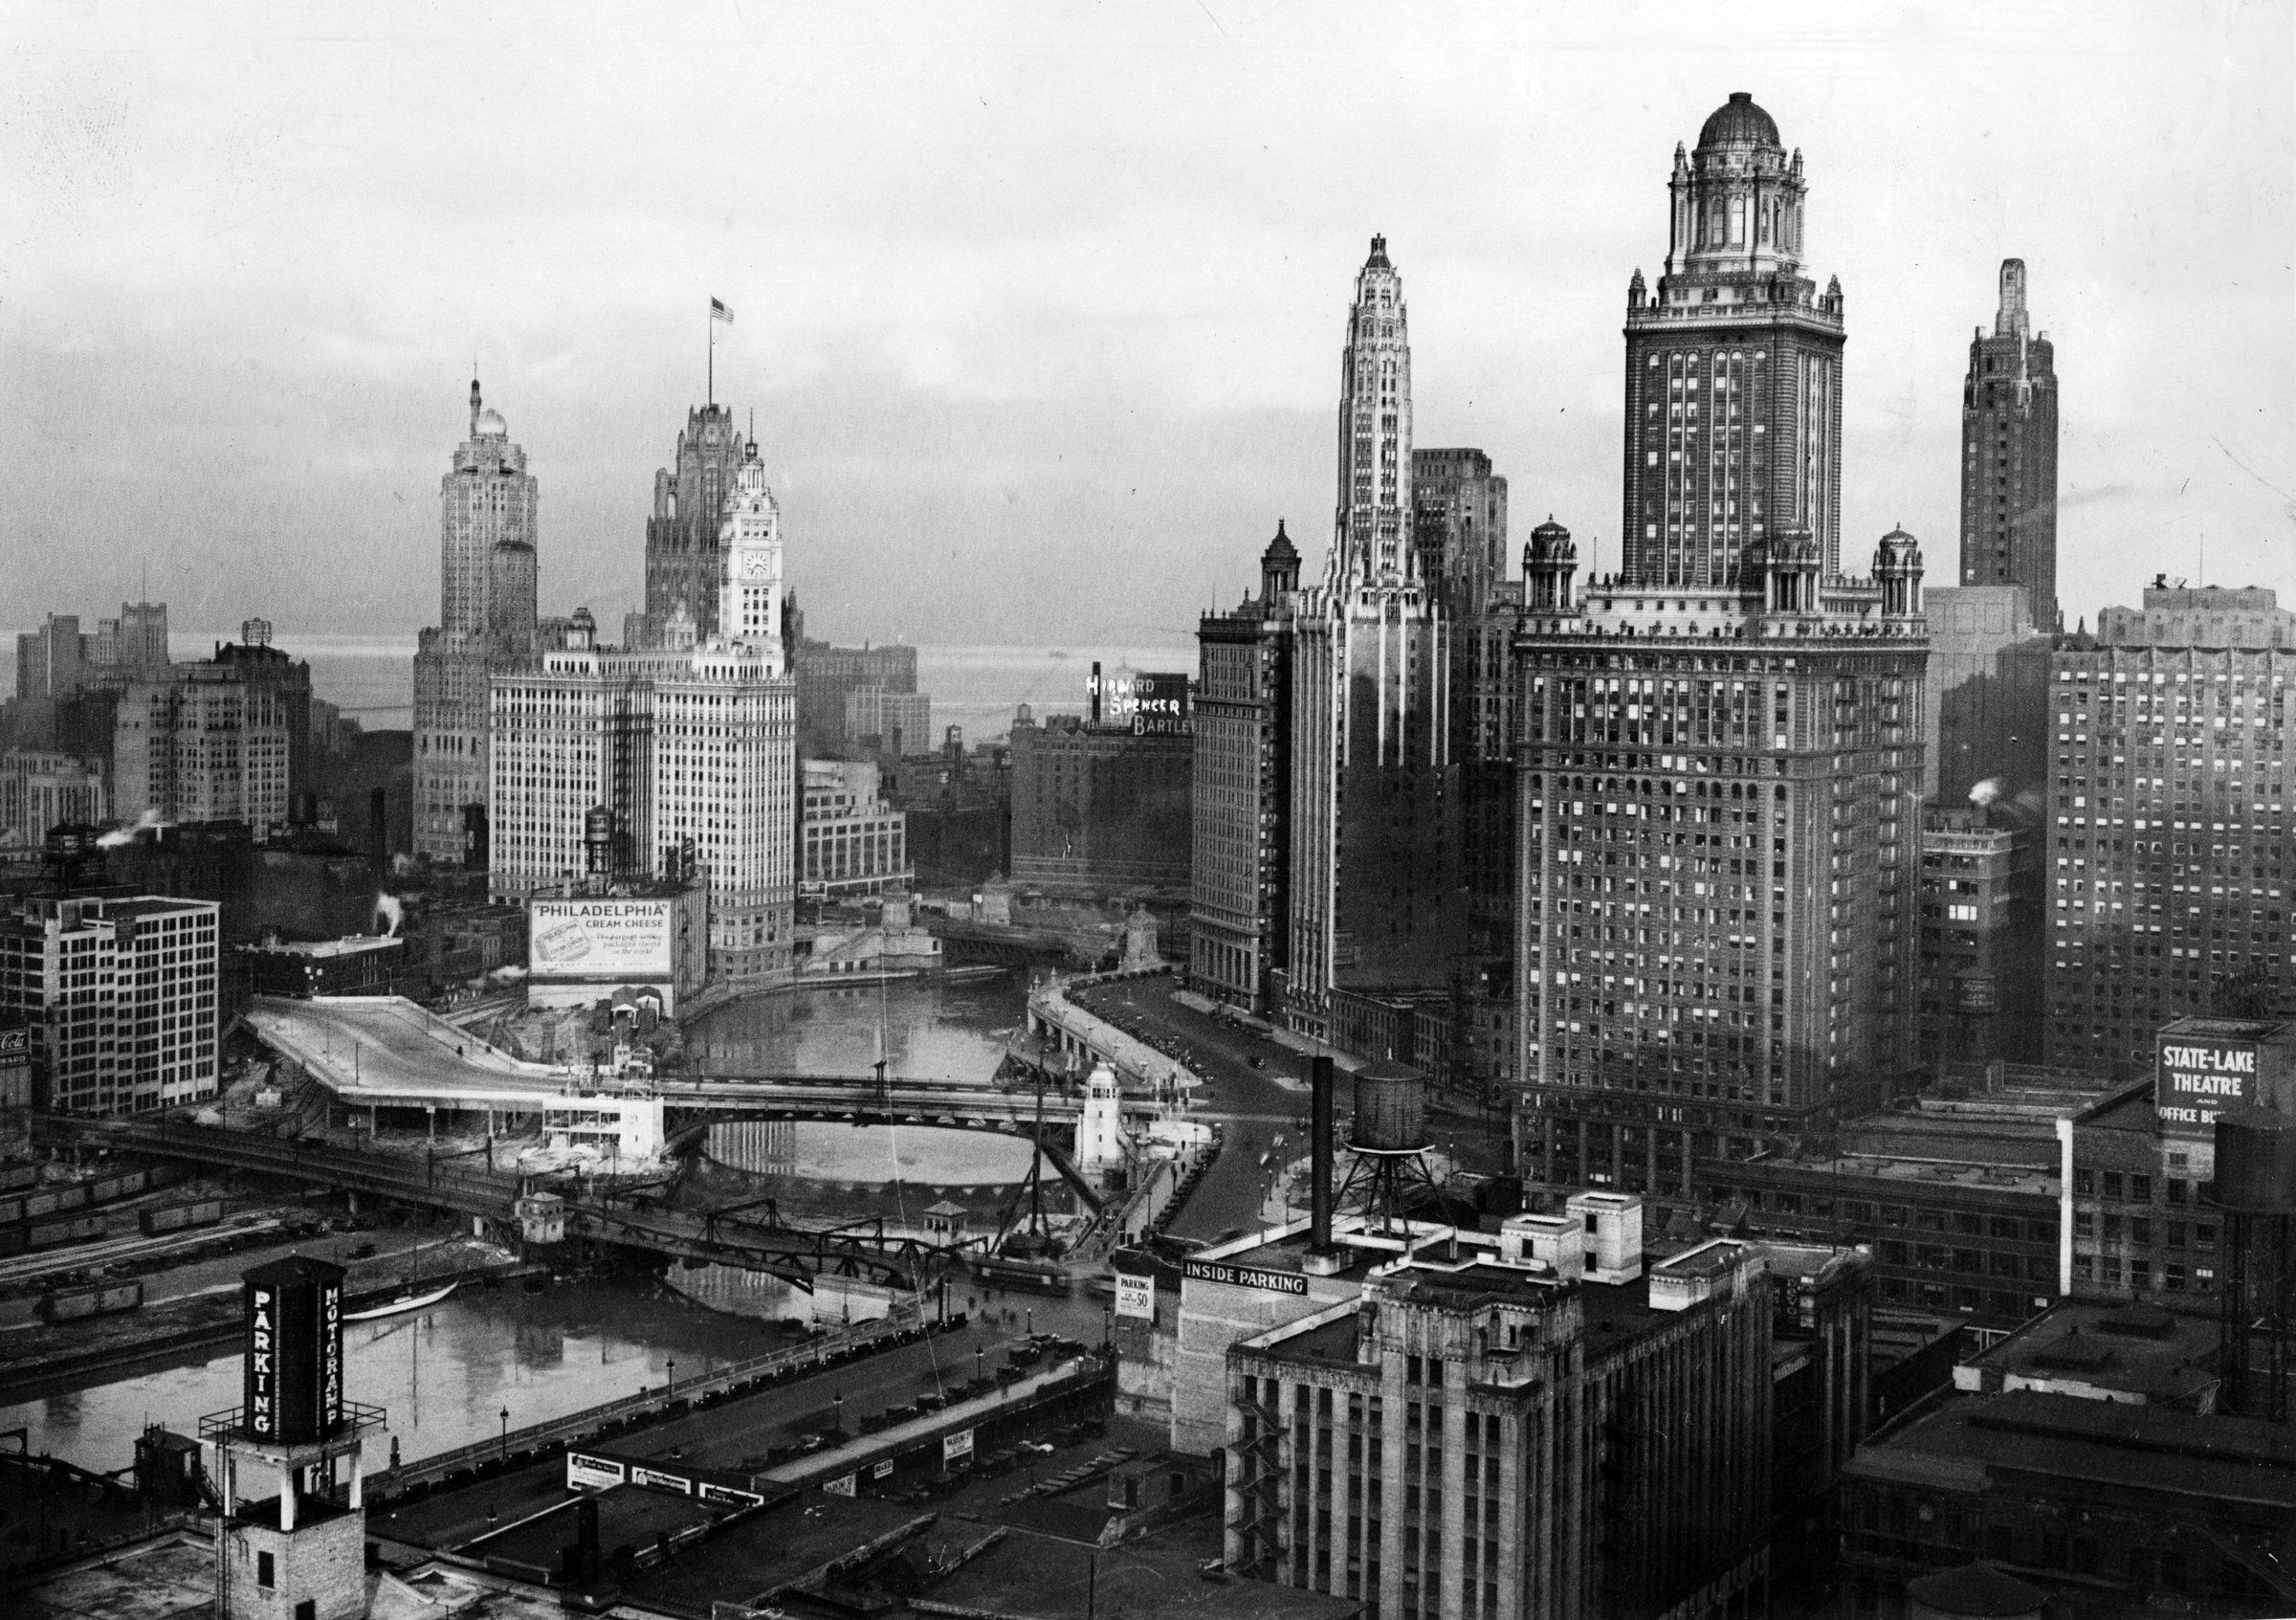 New York architecture 1920s – A New Yorker State of Mind |Museum New York Skyline 1920